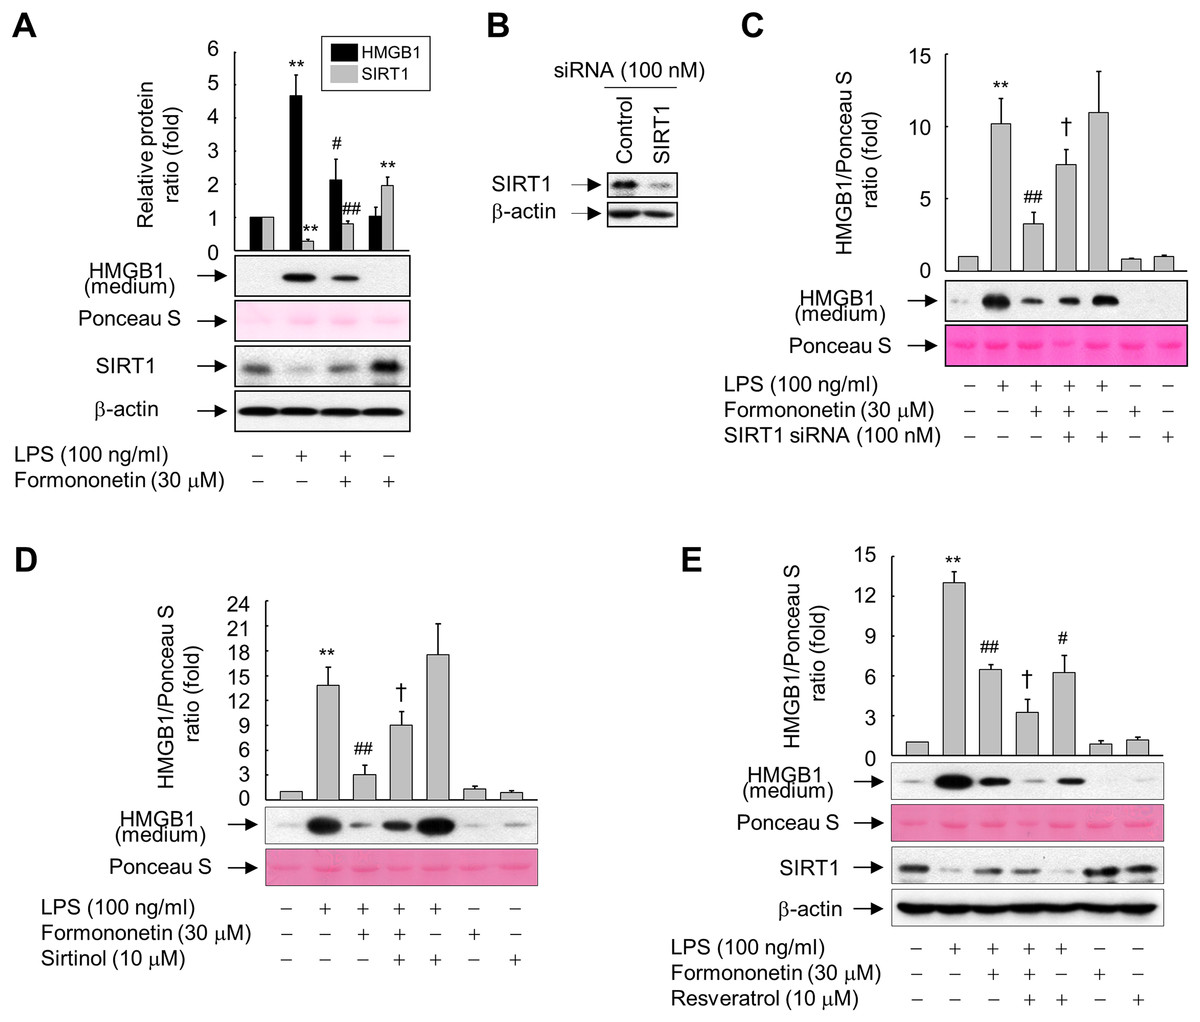 Formononetin Inhibits Lipopolysaccharide Induced Release Of High Mobility Group Box 1 By